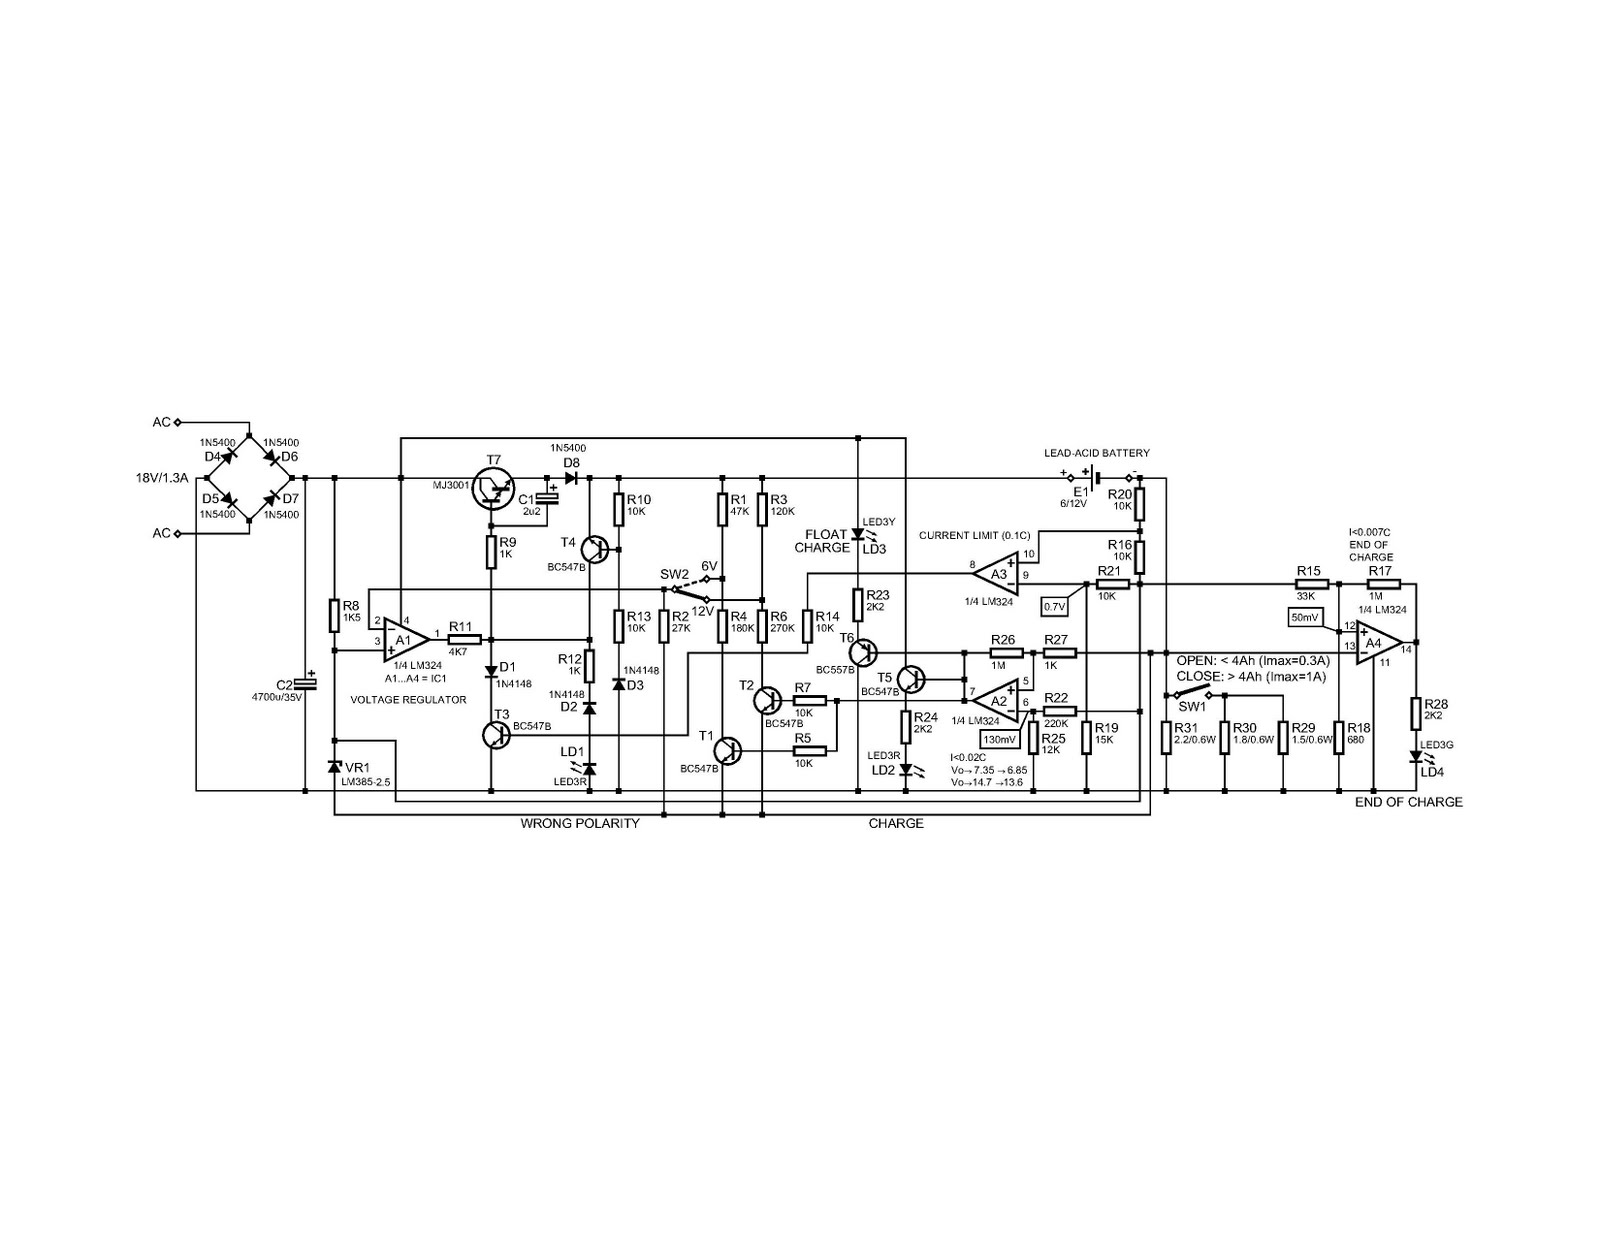 12v 24v Battery Bank Wiring Diagram Auto Electrical Opel Blazer Montera 4 24 Volt 32